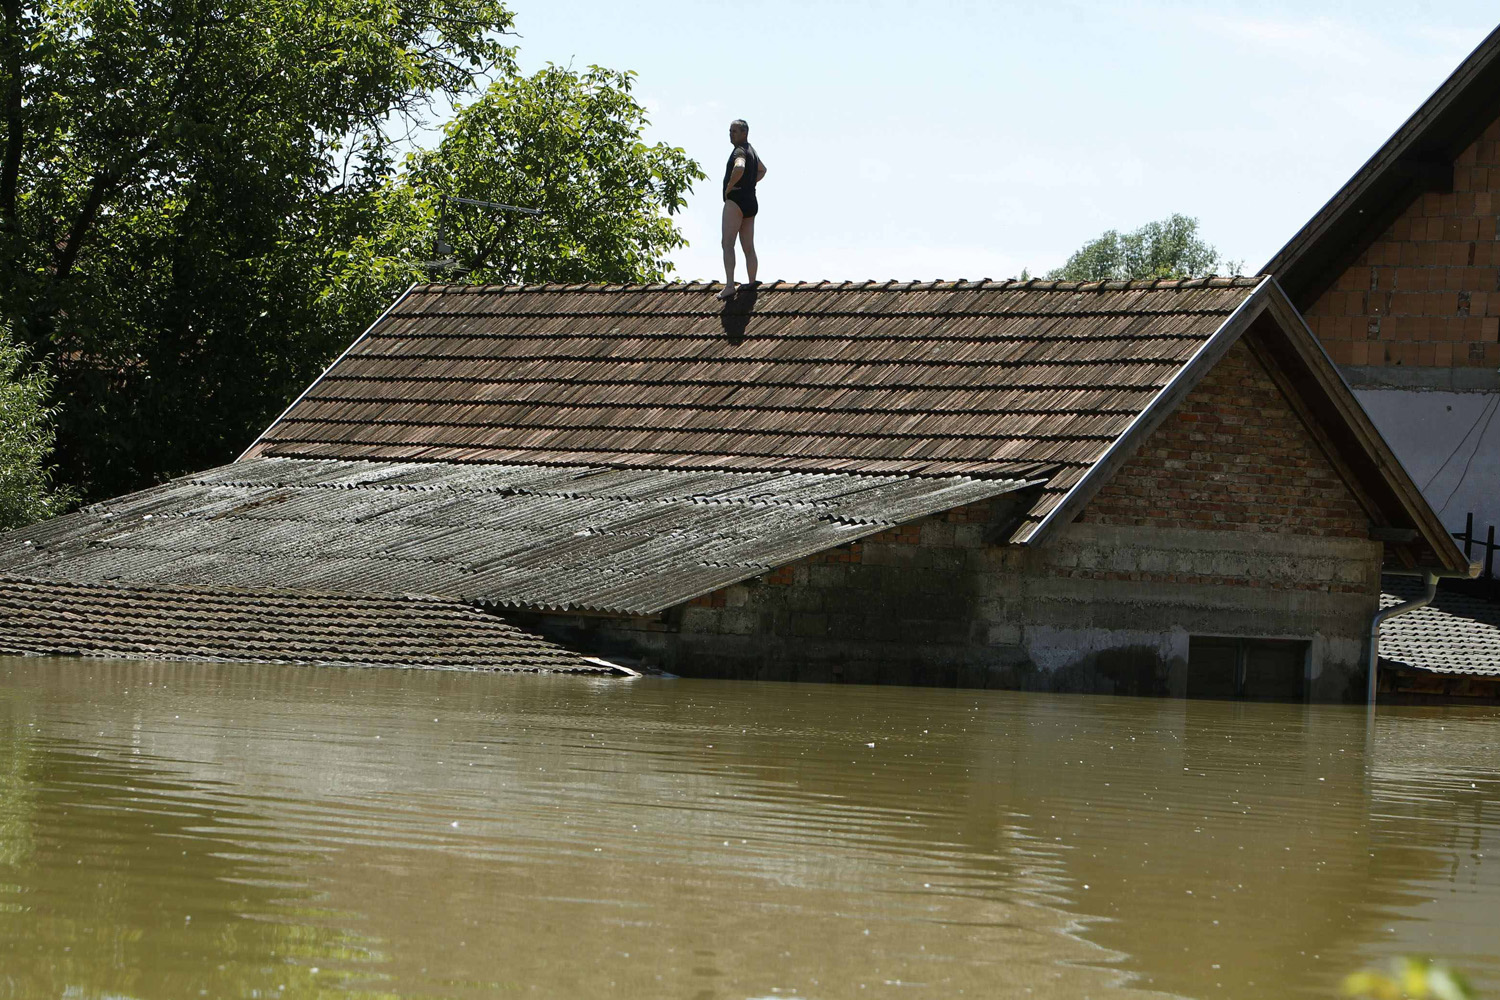 May 19, 2014. A man waits to be rescued from his house during heavy floods in Vojskova  More than a quarter of Bosnia's four million people have been affected by the worst floods to hit the Balkans in more than a century, the government said on Monday.